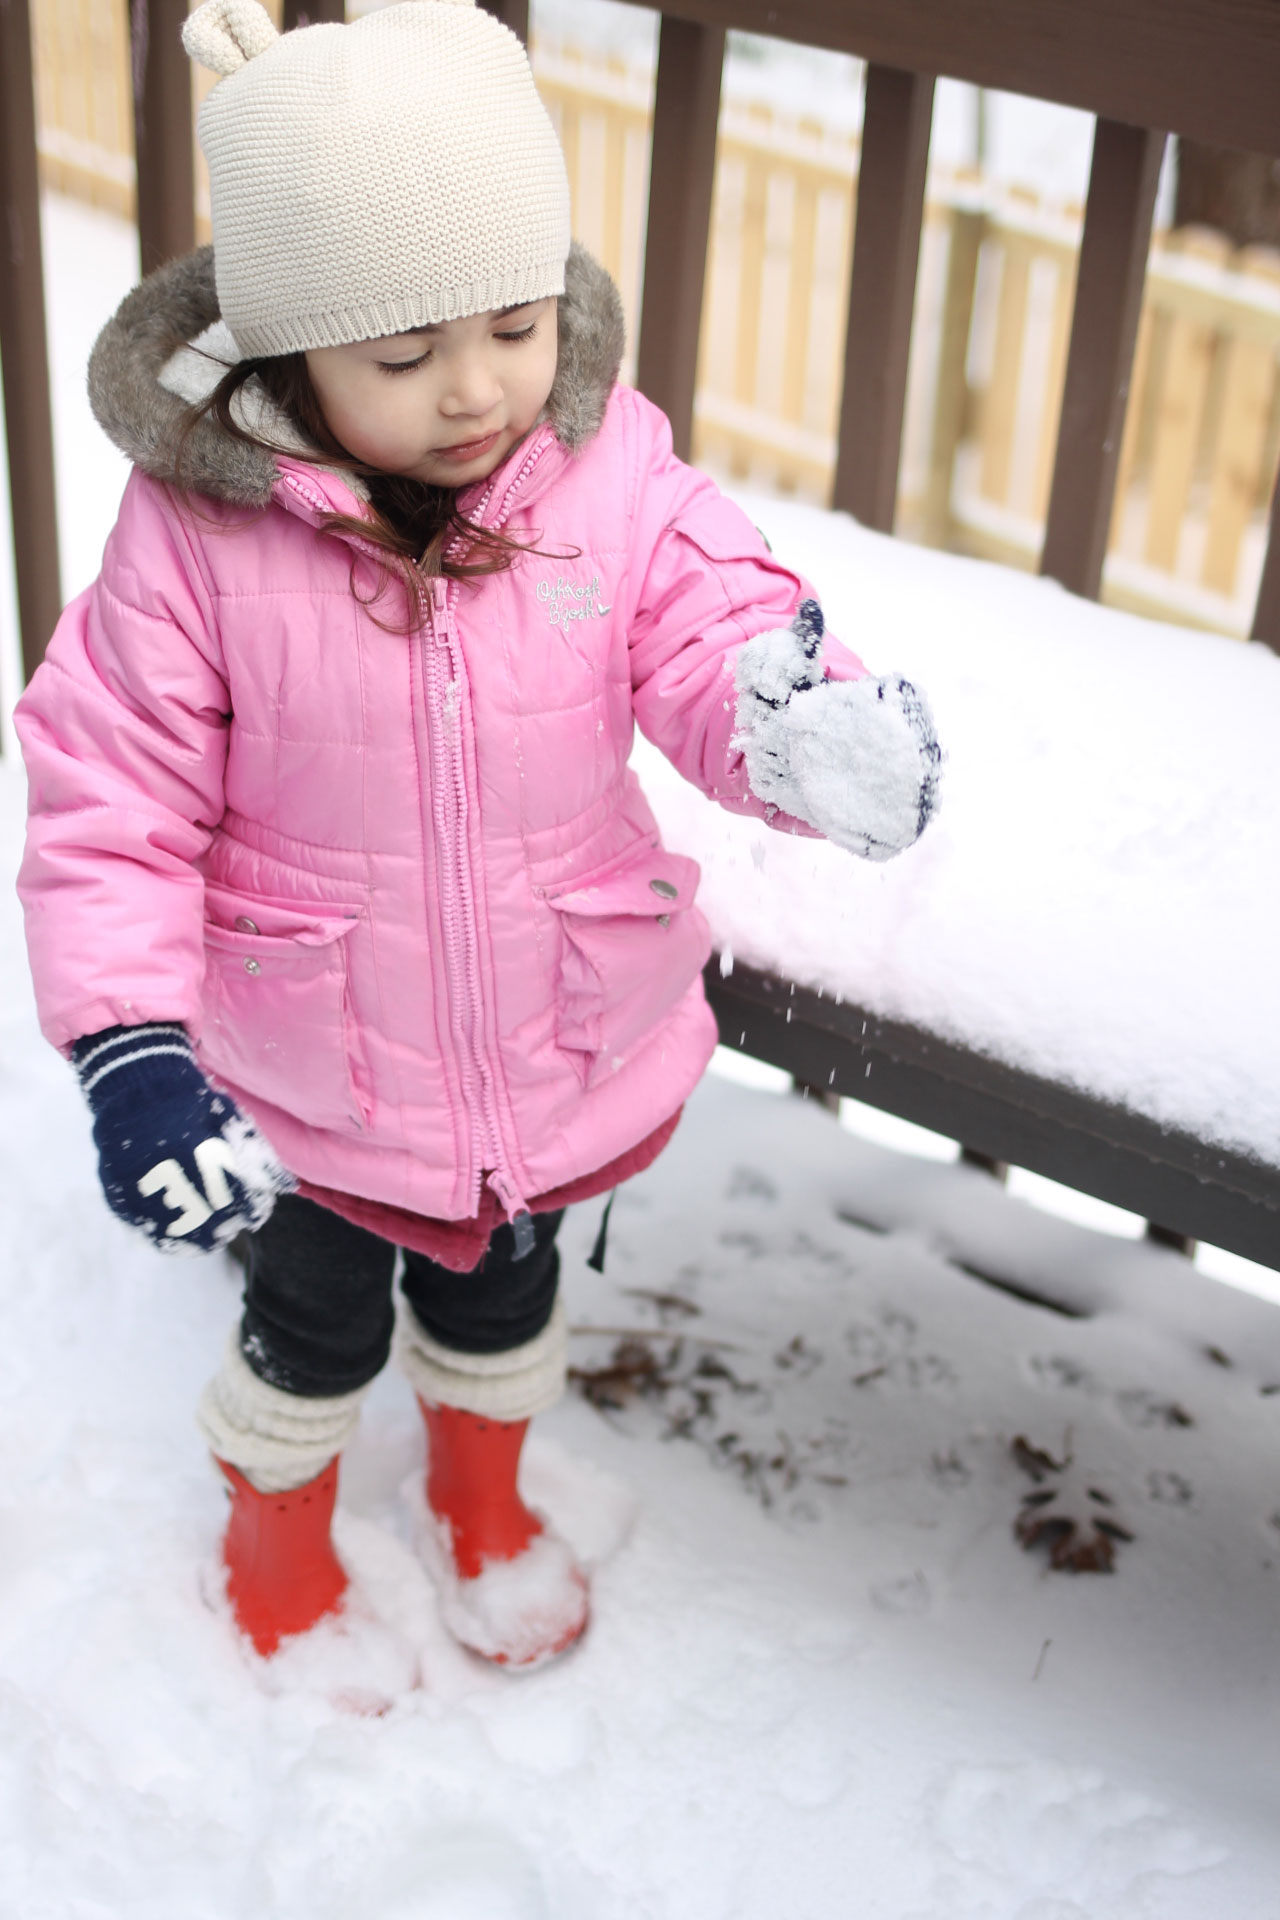 I love the traditions we're starting to make on snow day(s), like playing in the snow, making a big batch of cookies, and taking ALL of the pictures. | glitterinc.com | @glitterinc